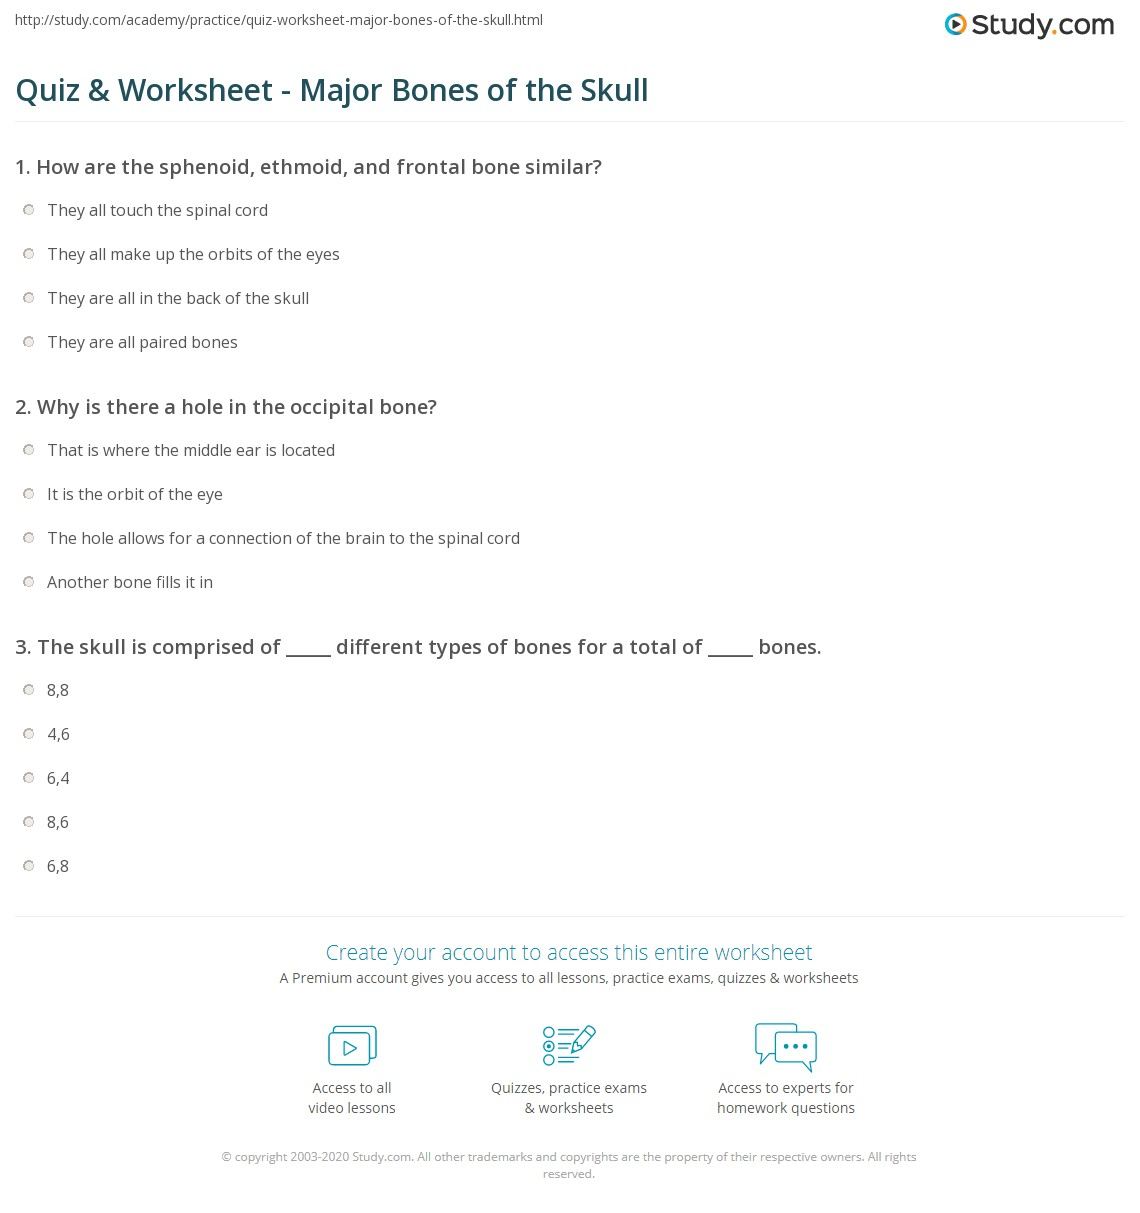 Quiz & Worksheet - Major Bones of the Skull  Study.com